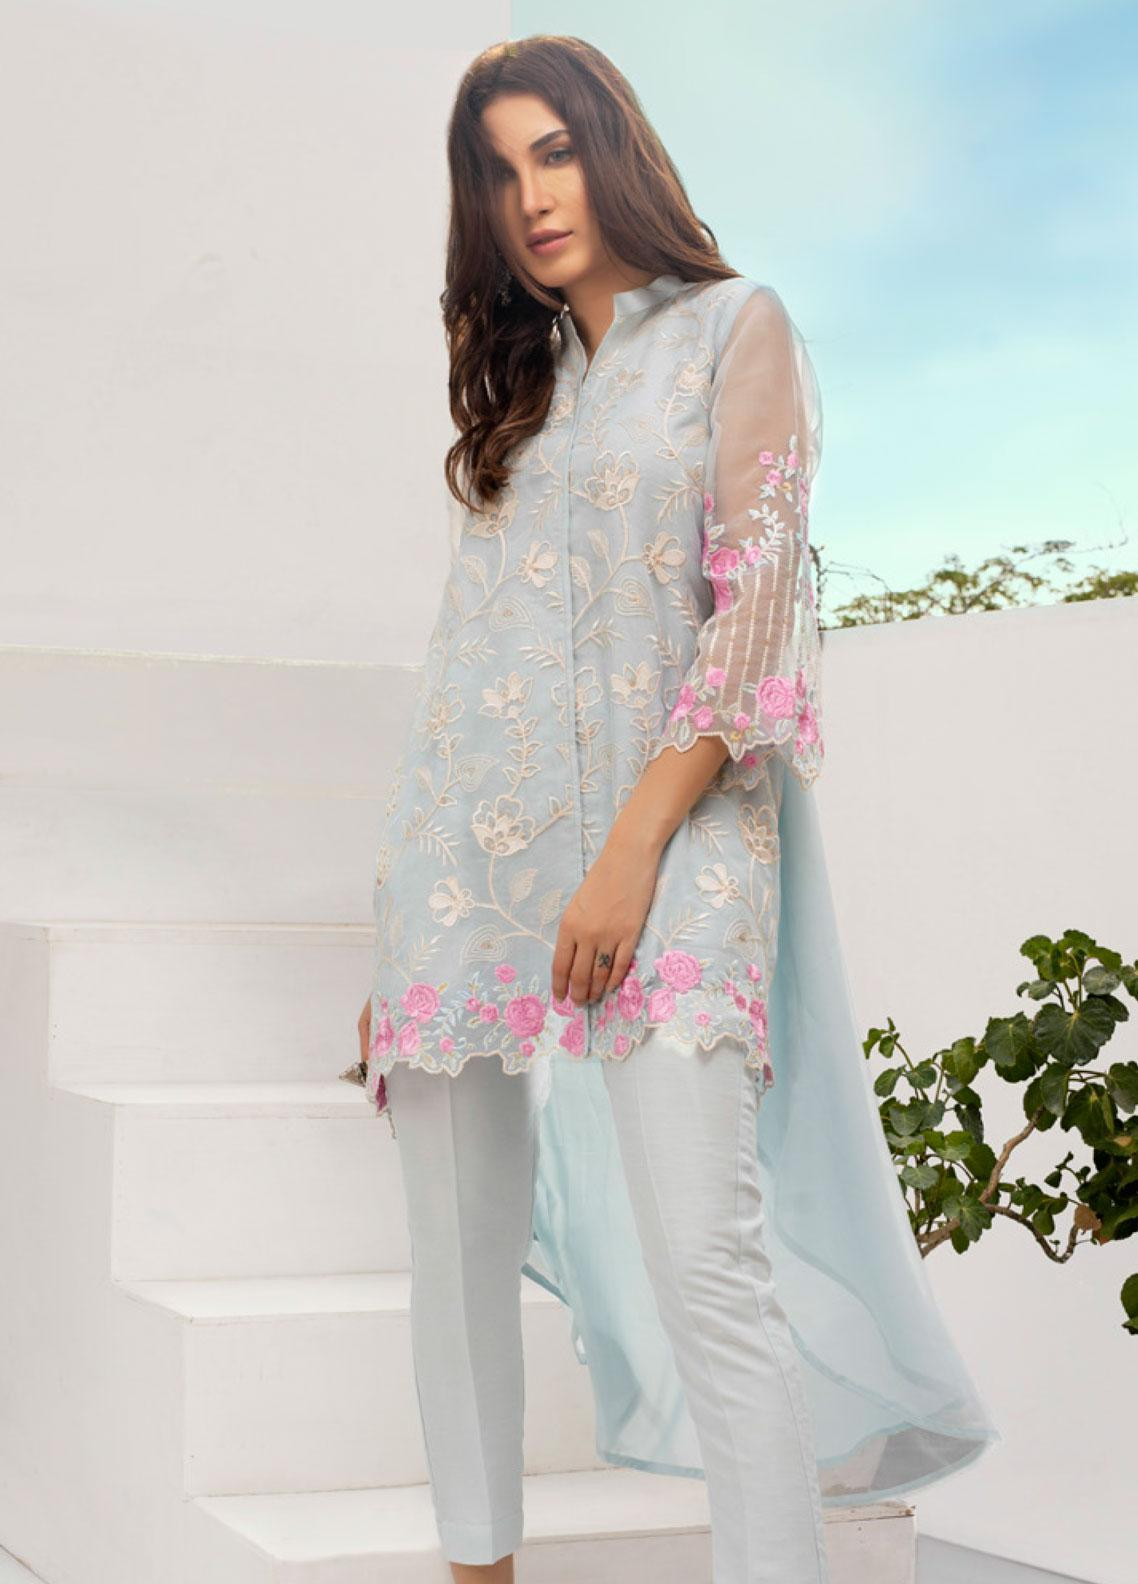 Azure Embroidered Organza Unstitched Kurties AZU19-E3 04 WHIMSICAL HUES - Luxury Formal Collection